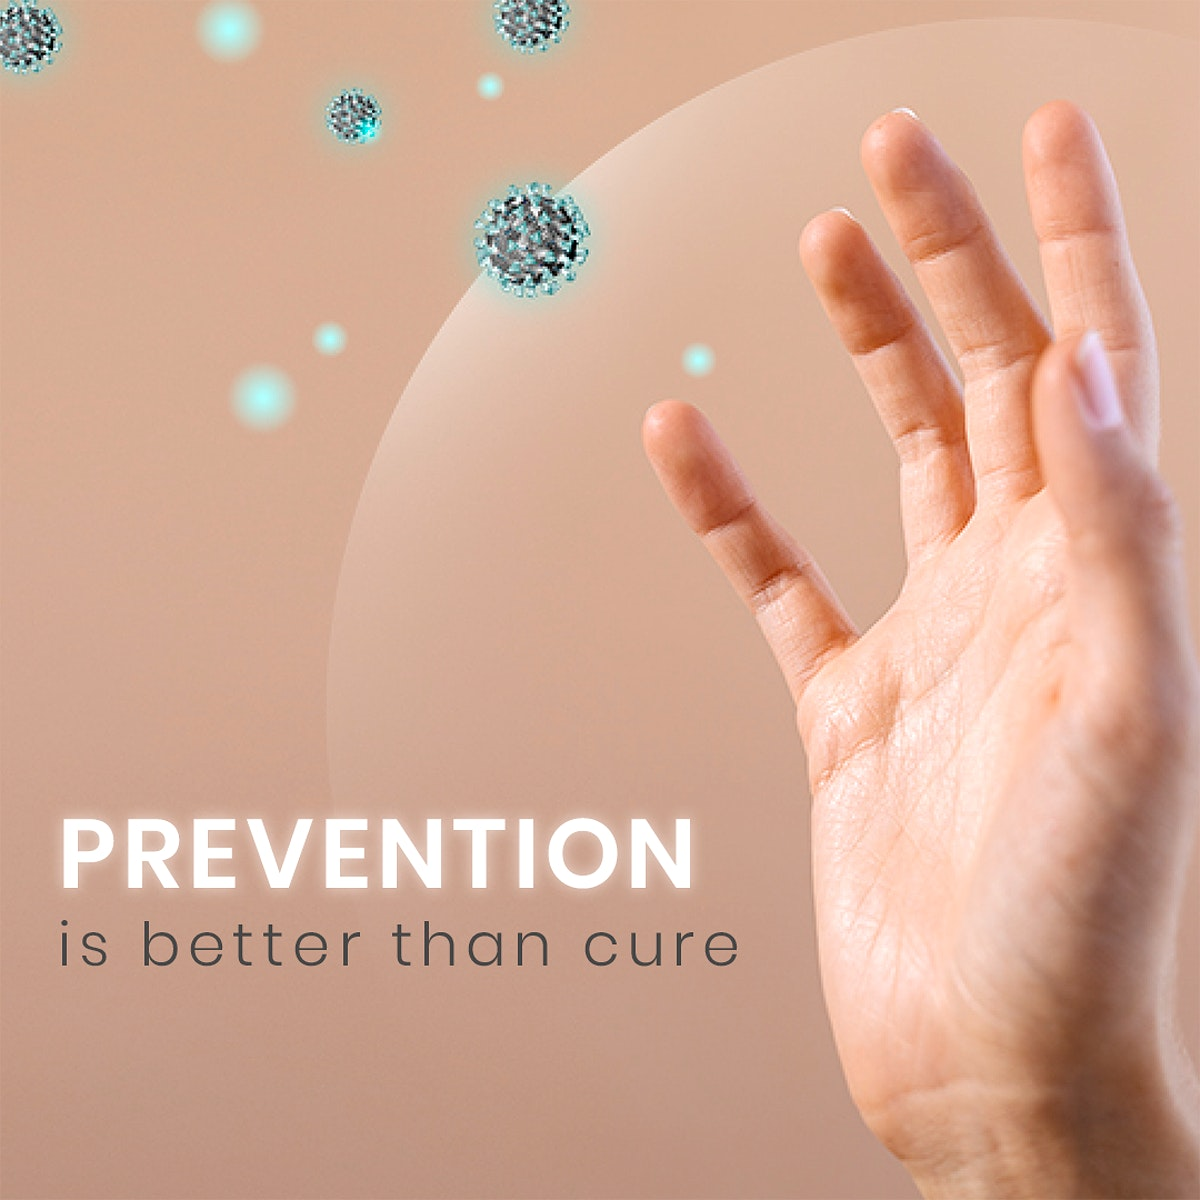 Prevention is better than cure social template mockup